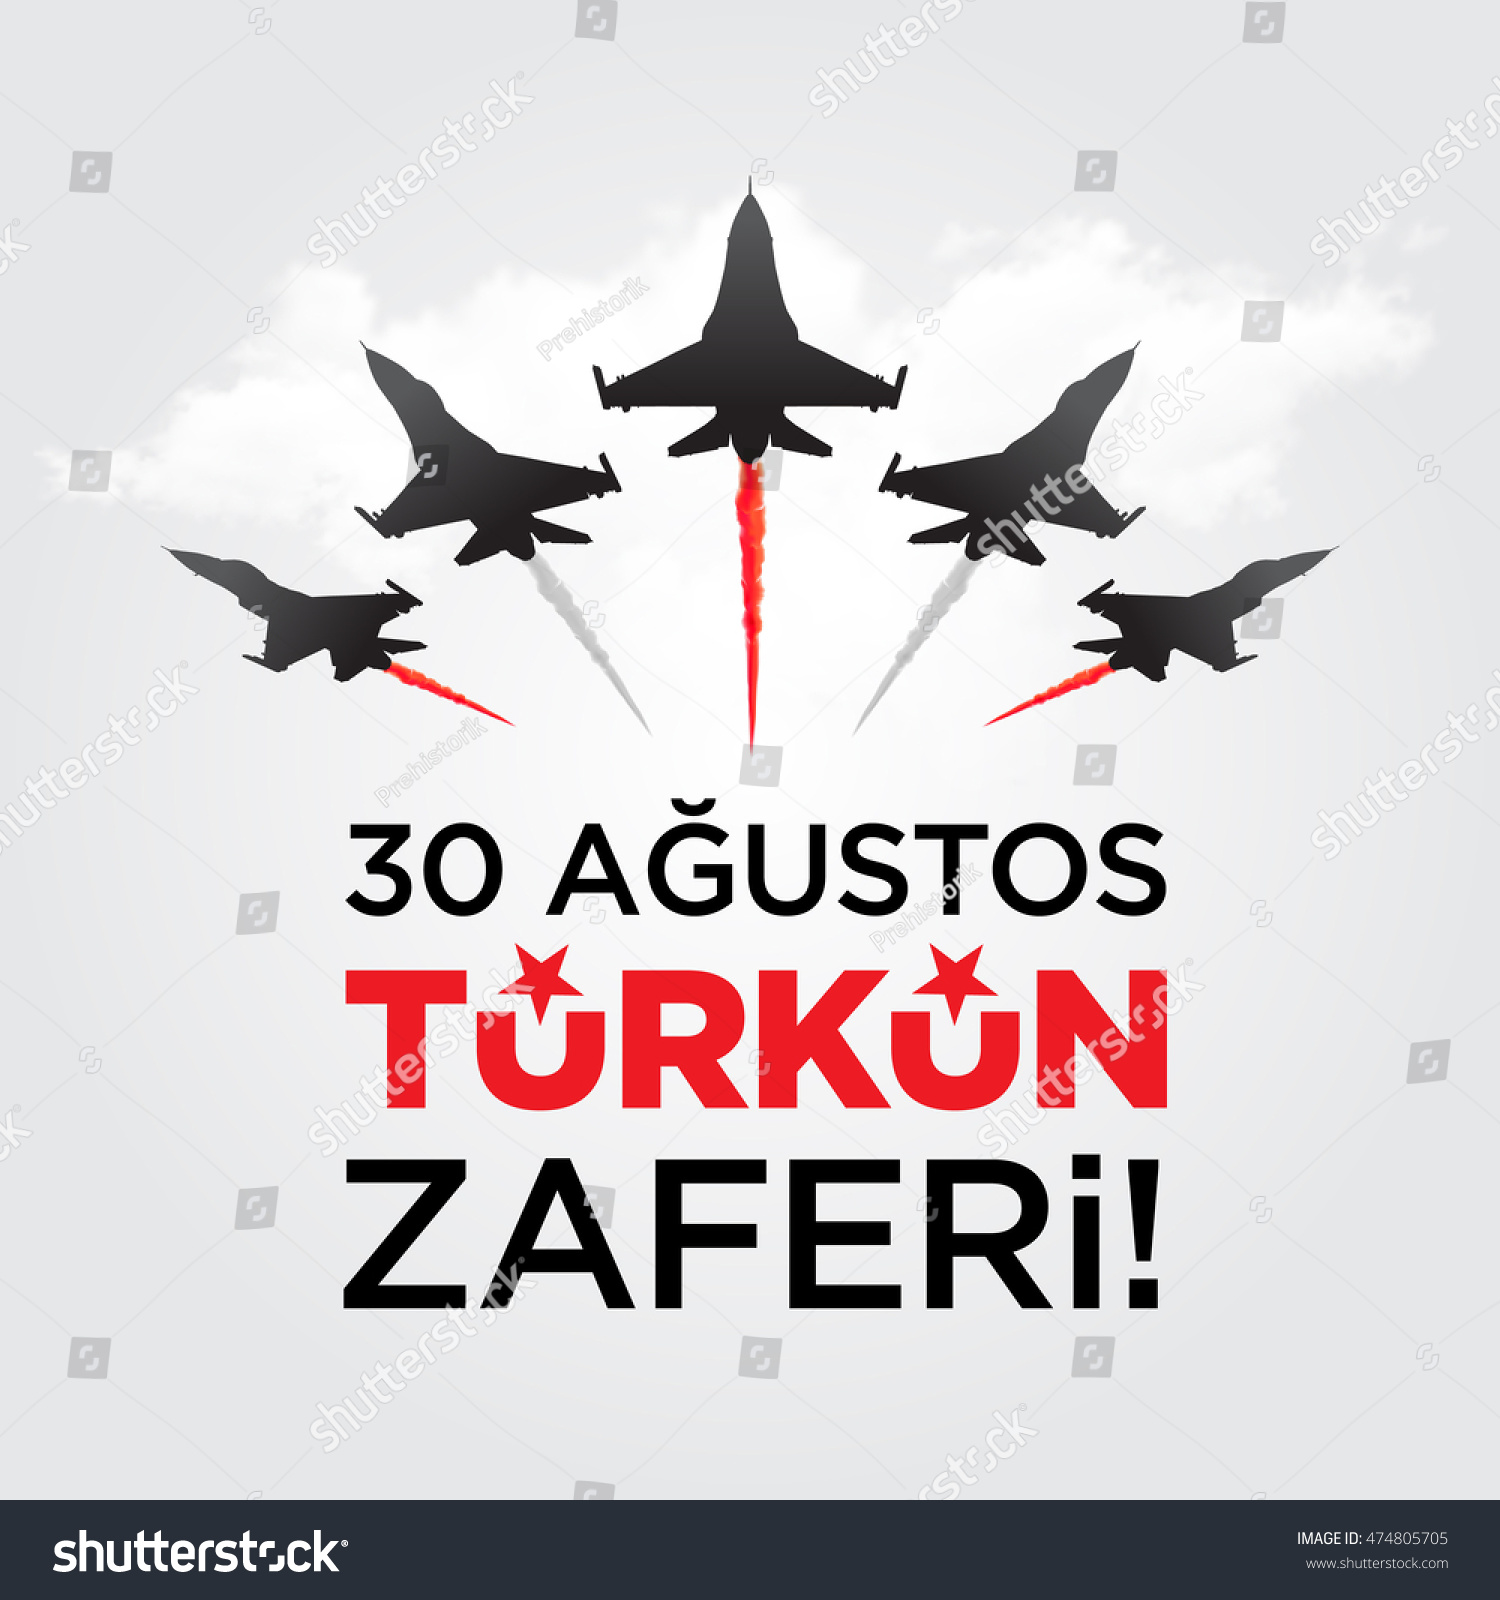 Republic of Turkey National Victory Celebration Card Background Badges Vector with Flag and Fighter Jets English August 30 Victory of Turks Red White Background